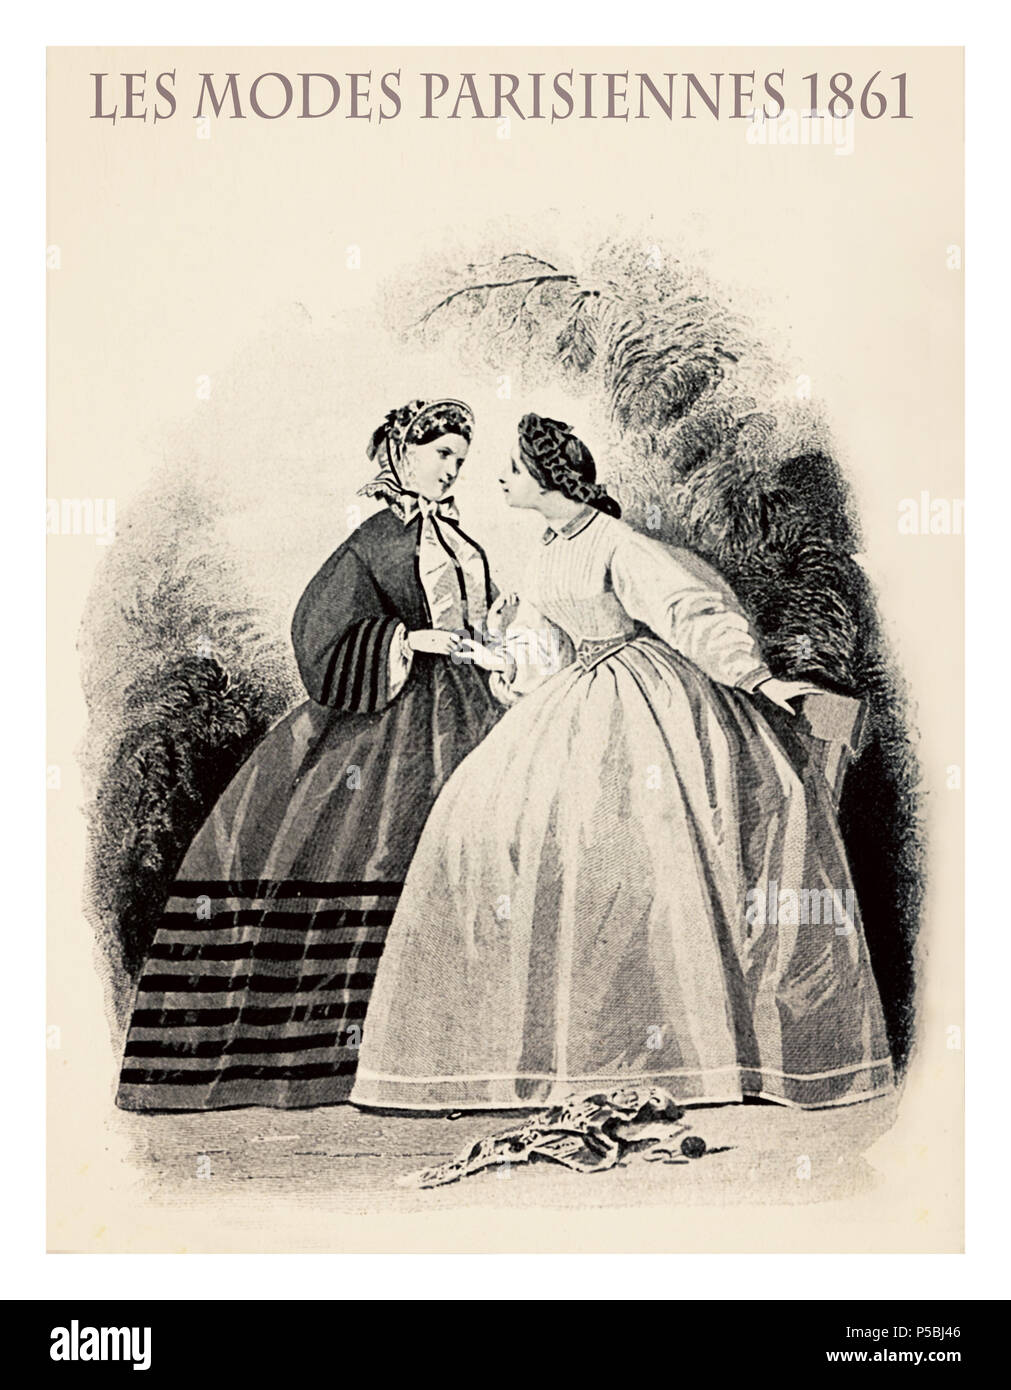 1861 fashion, French magazine Les Modes Parisiennes presents two ladies standing in garden chatting with fancy cloths - Stock Image